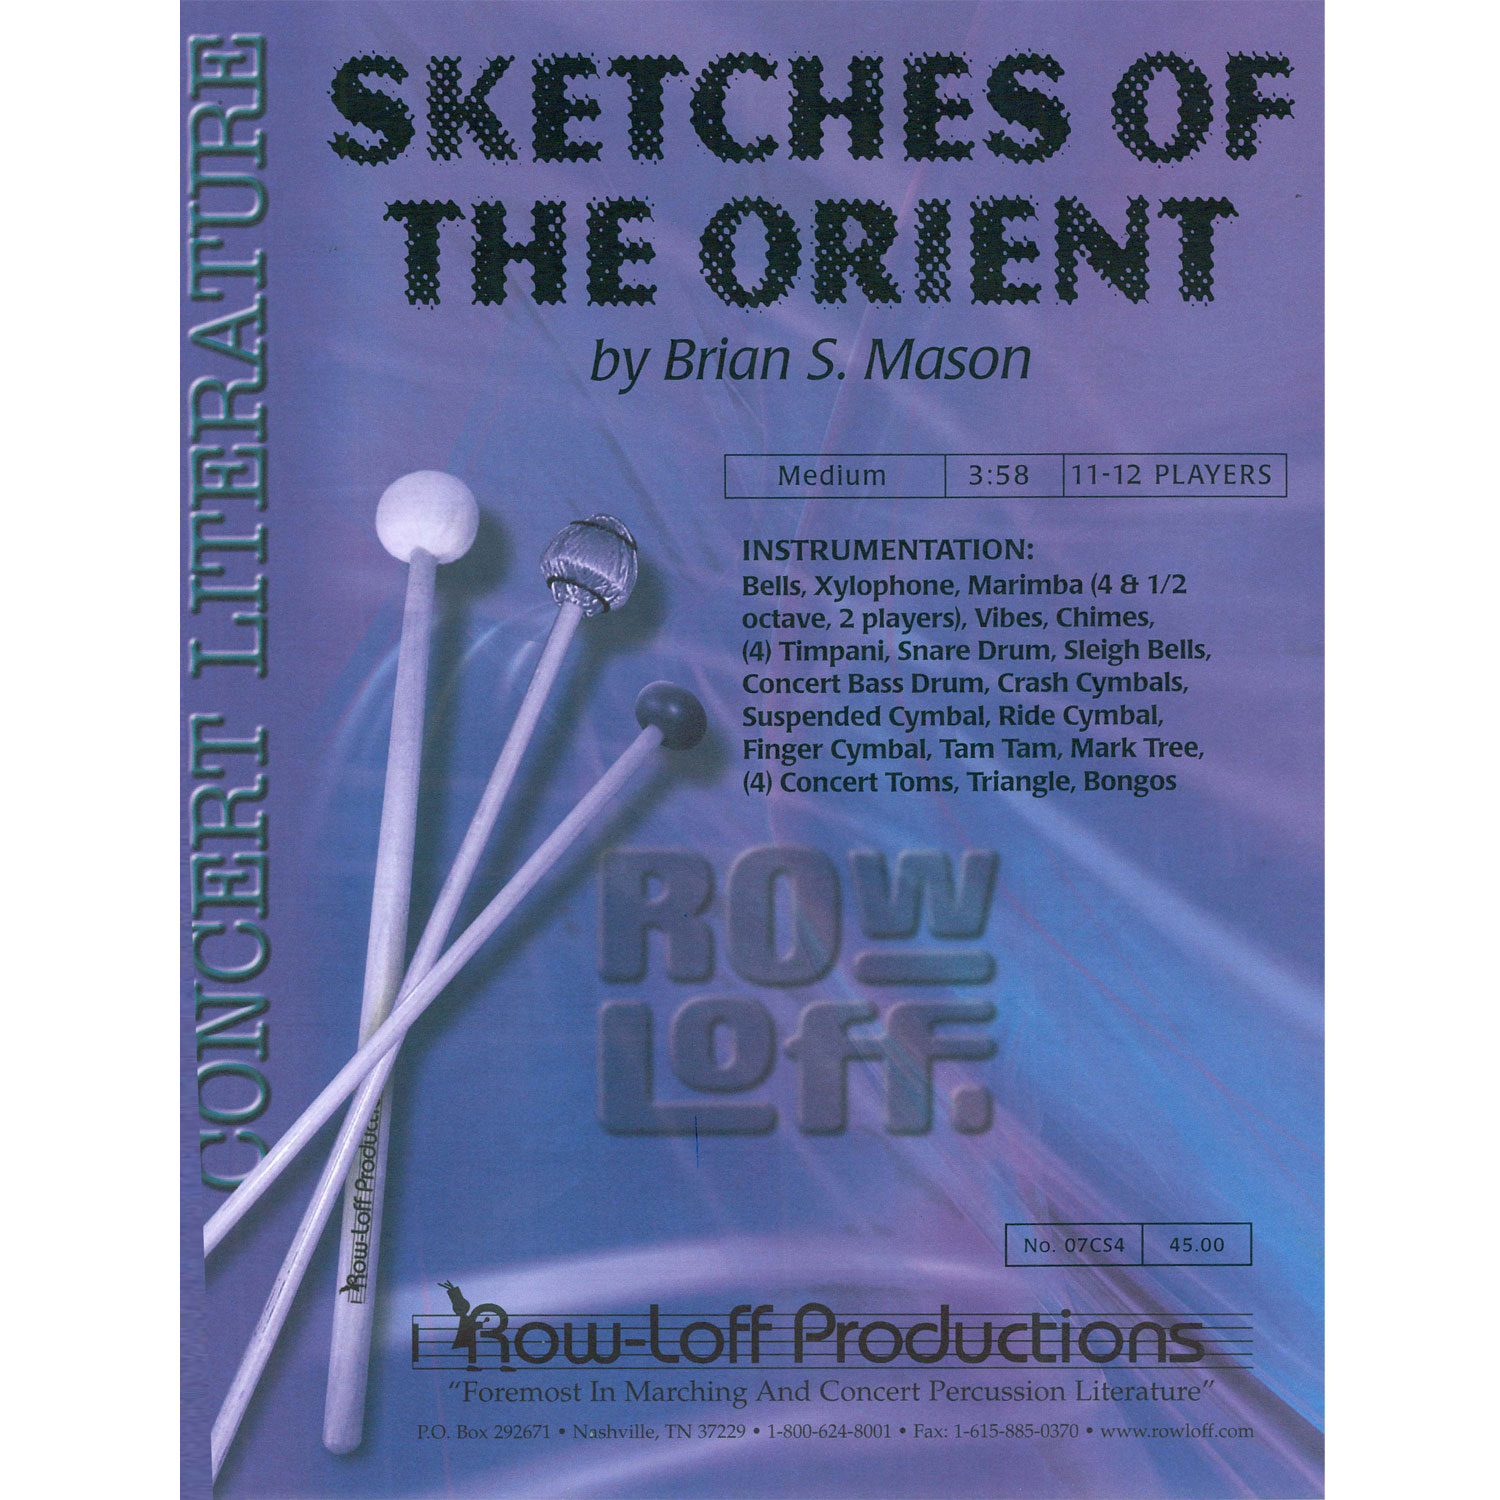 Sketches of the Orient by Brian S. Mason